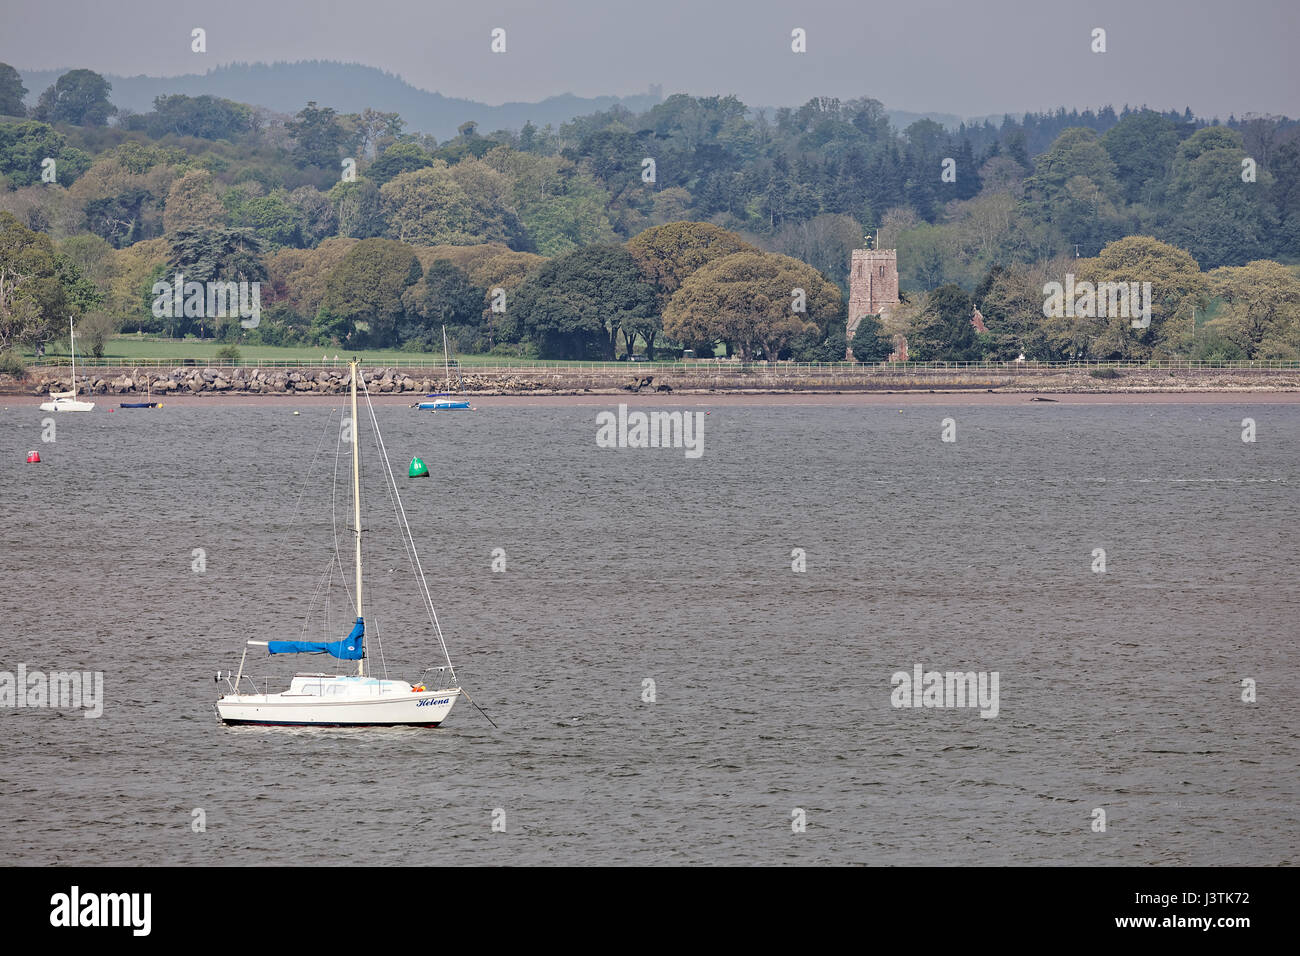 Sailing boats moored in the River Exe estuary with Powderham Church of St Clements in the background - Stock Image